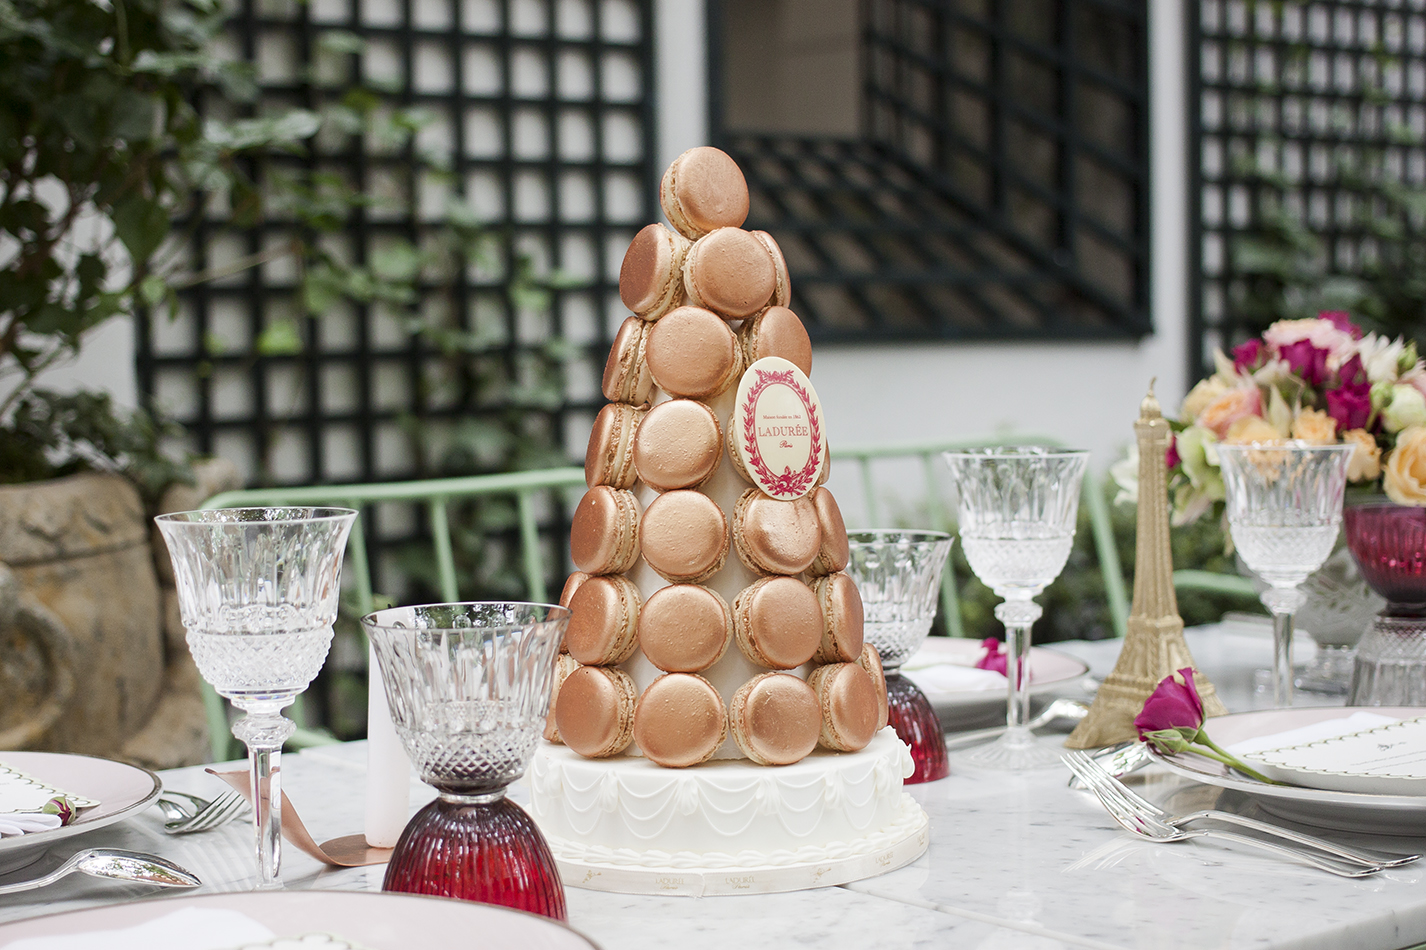 A pyramid made with edible copper macarons takes center stage at Raberin's table.